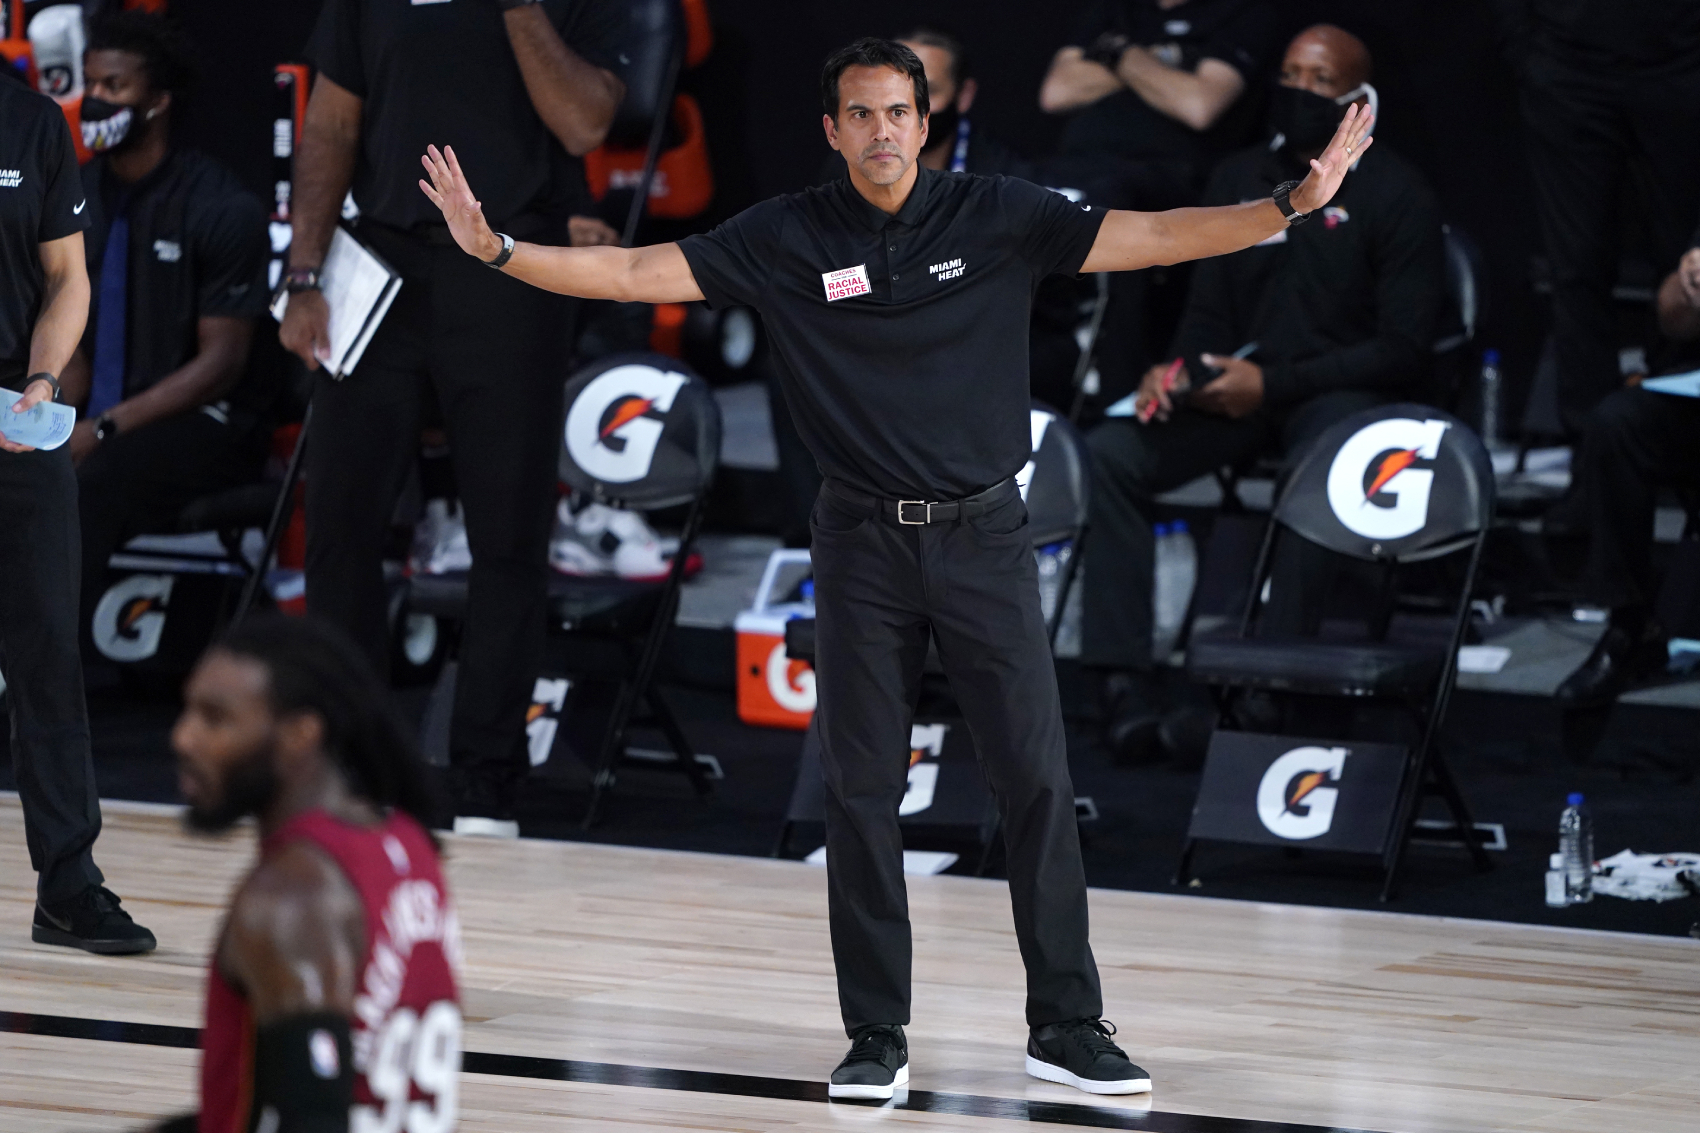 The Miami Heat are down 2-0 to the Lakers in the Finals. Head coach Erik Spoelstra, however, just revealed what they need to do to come back.